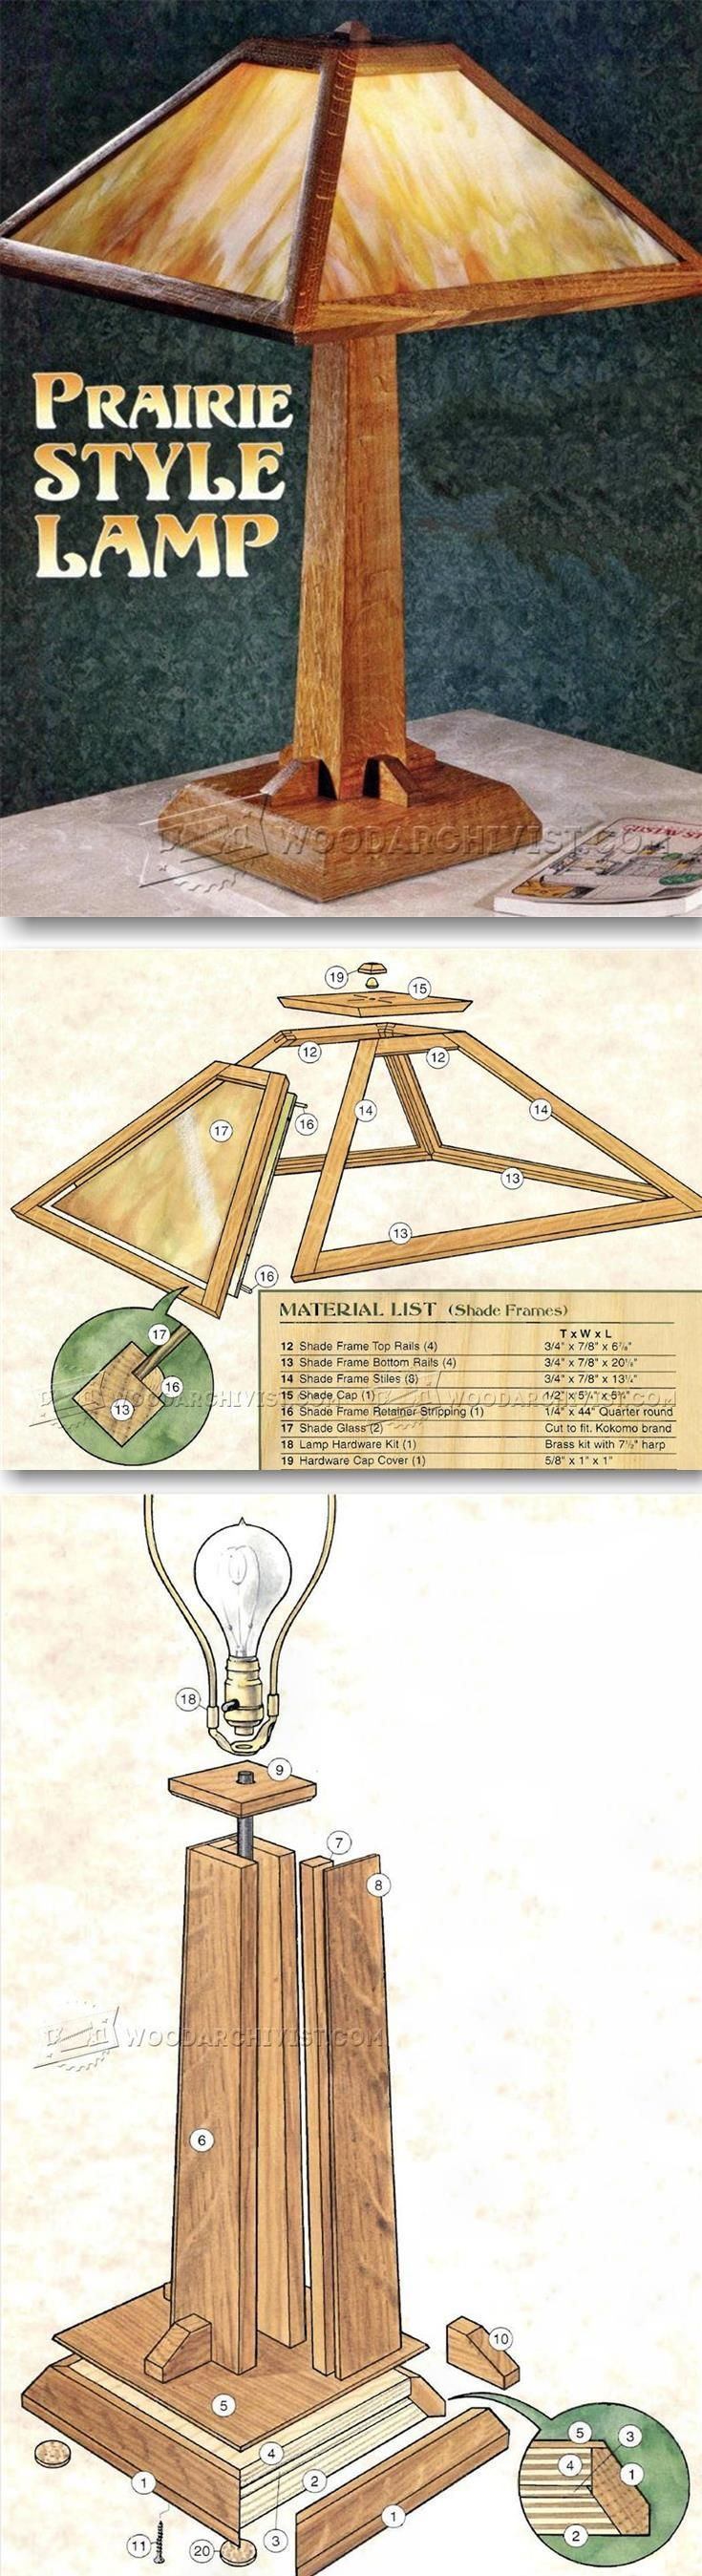 Prairie Table Lamp Plans - Woodworking Plans and Projects | WoodArchivist.com